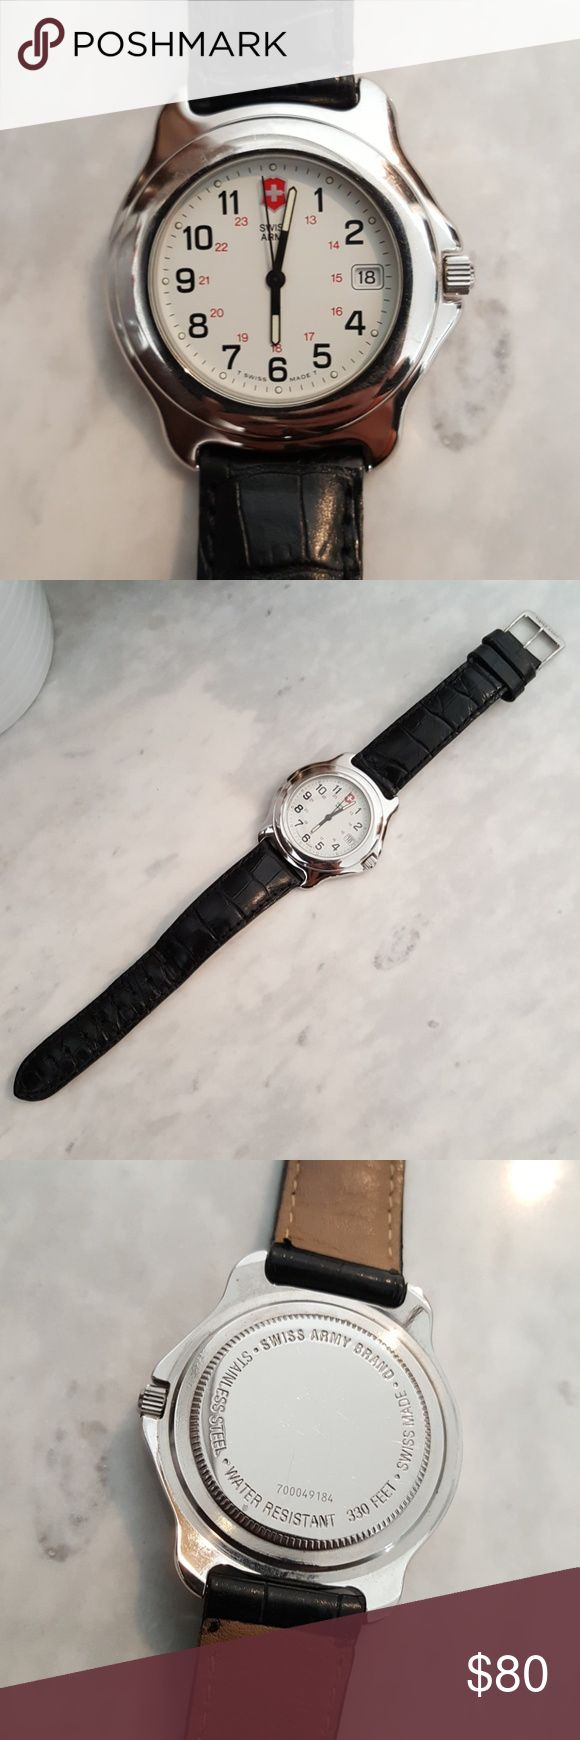 Swiss Army watch Classic Swiss Army watch in excellent condition with its original  German leather strap. It's a great classic everyday watch. Wear it to the office or pair it with a feminine dress to add an edge. It's a men's watch but can be worn as a boyfriend watch by the ladies. Needs new battery. Swiss Army Accessories Watches